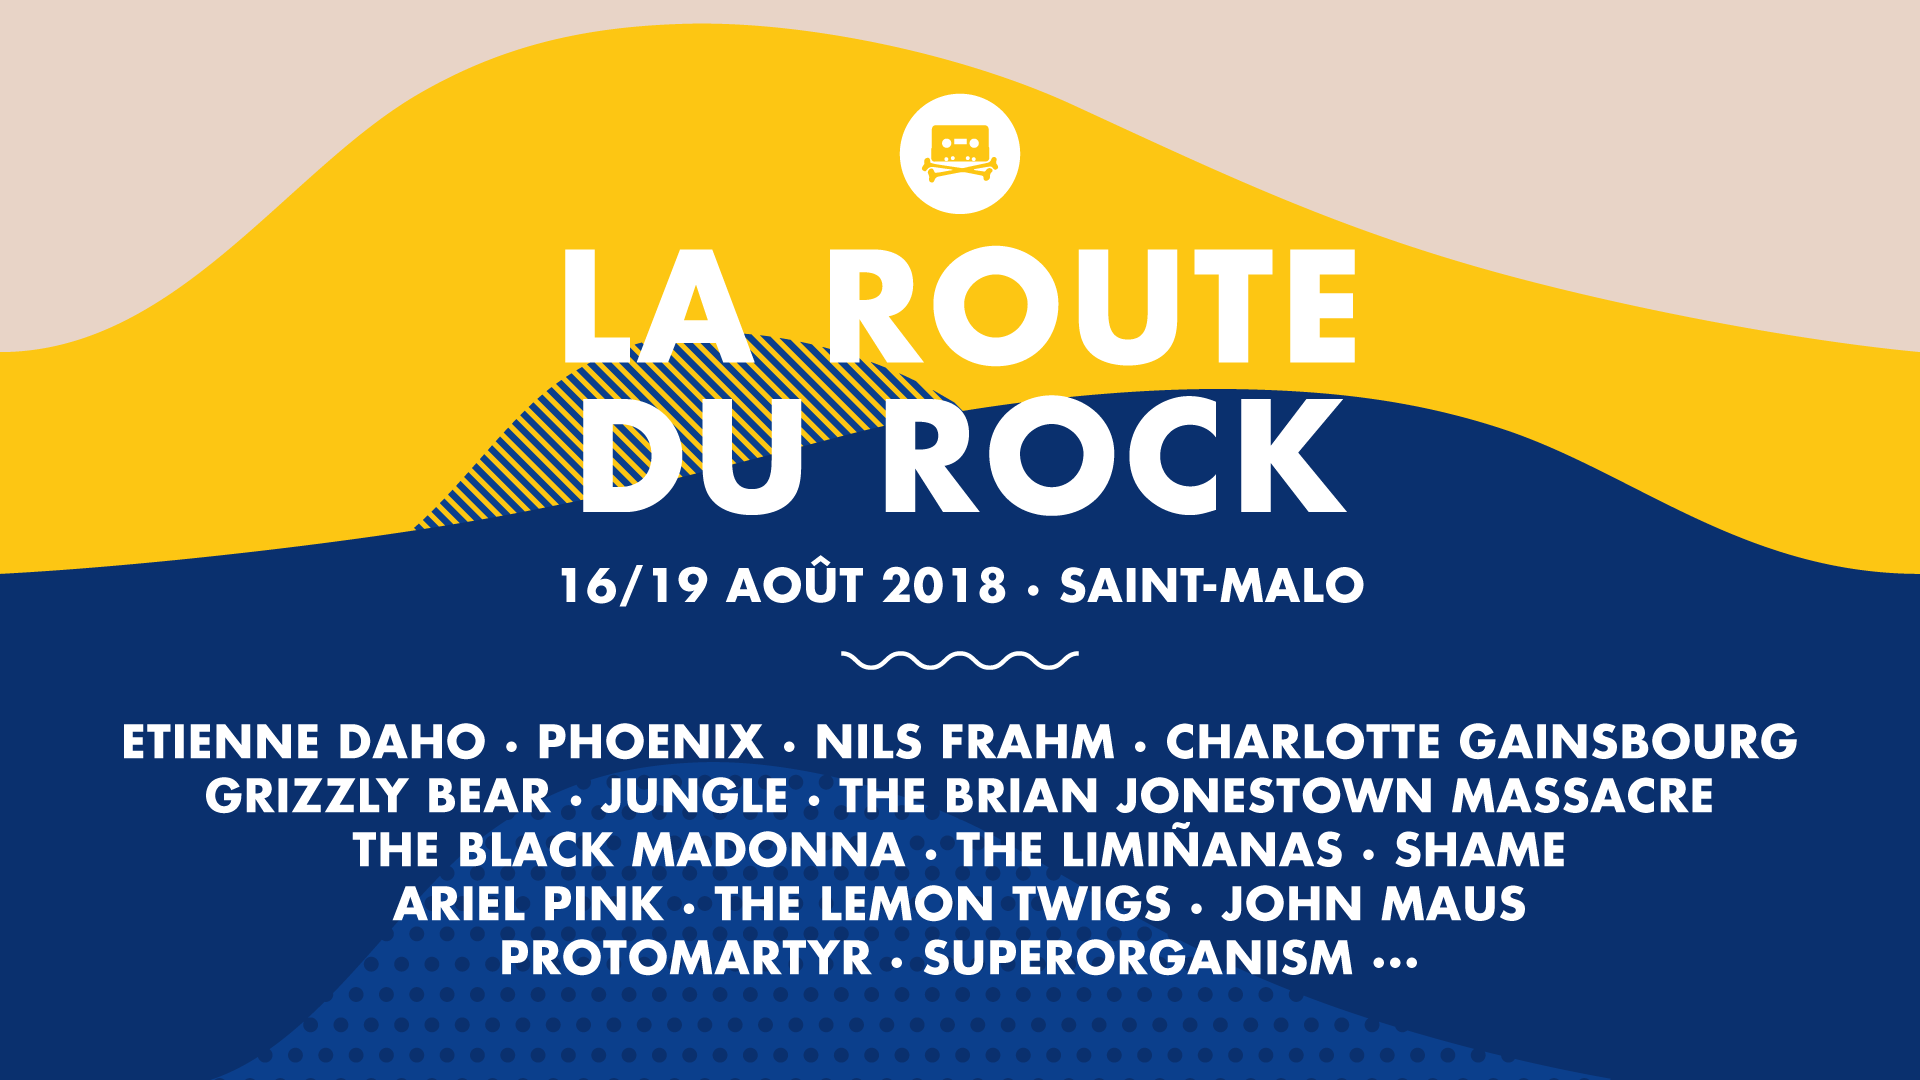 Festival – La Route du Rock, Collection Eté 2018, Fort de St Père – St Malo